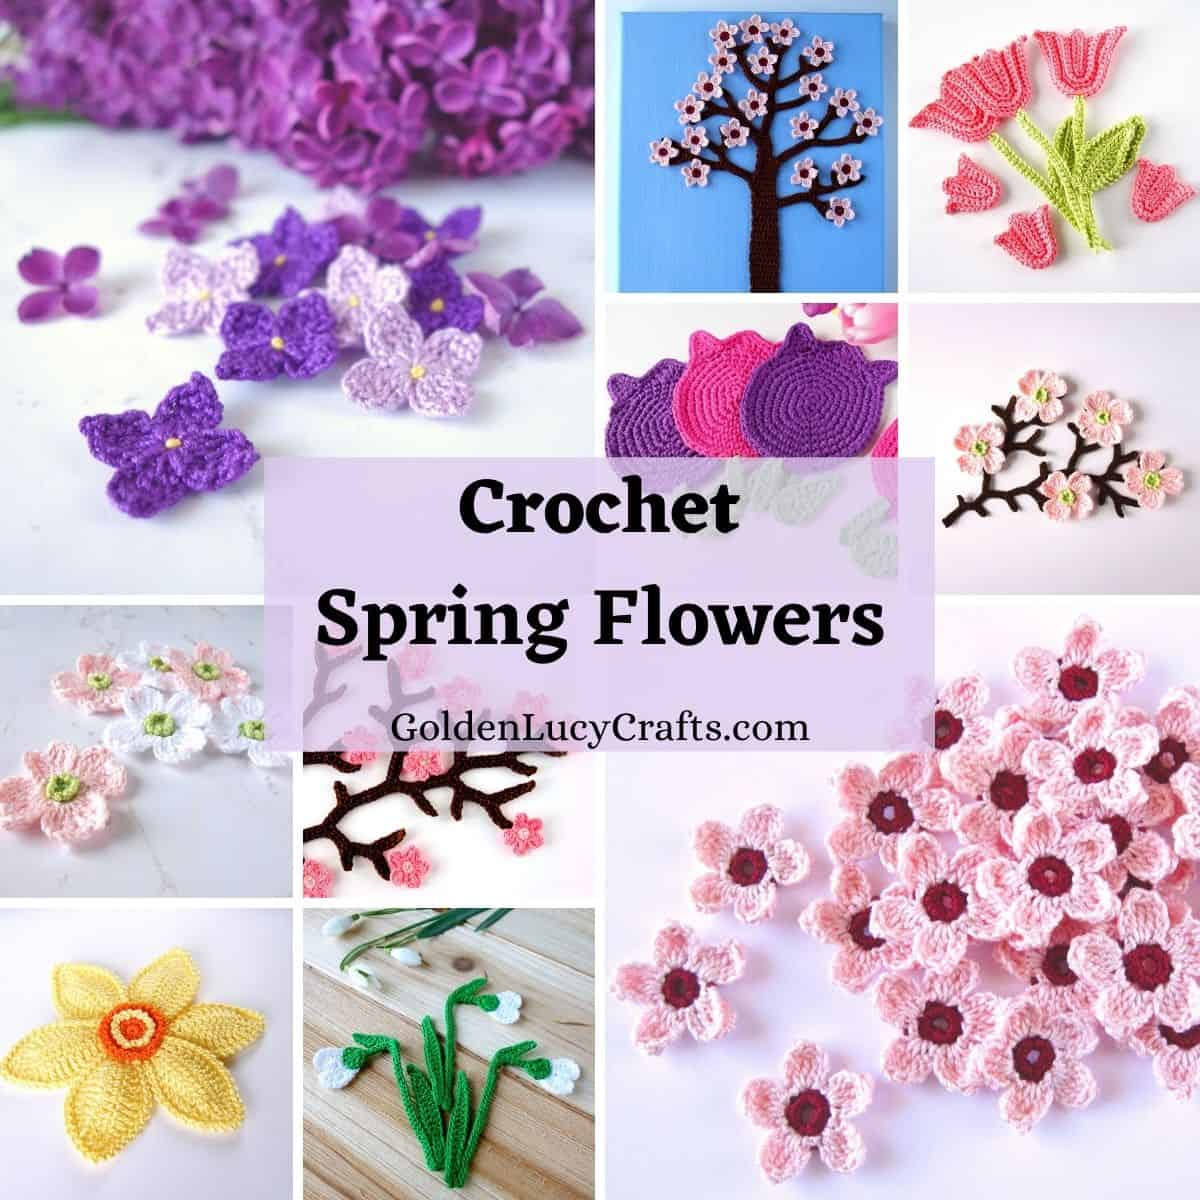 Crochet Spring flowers photo collage.